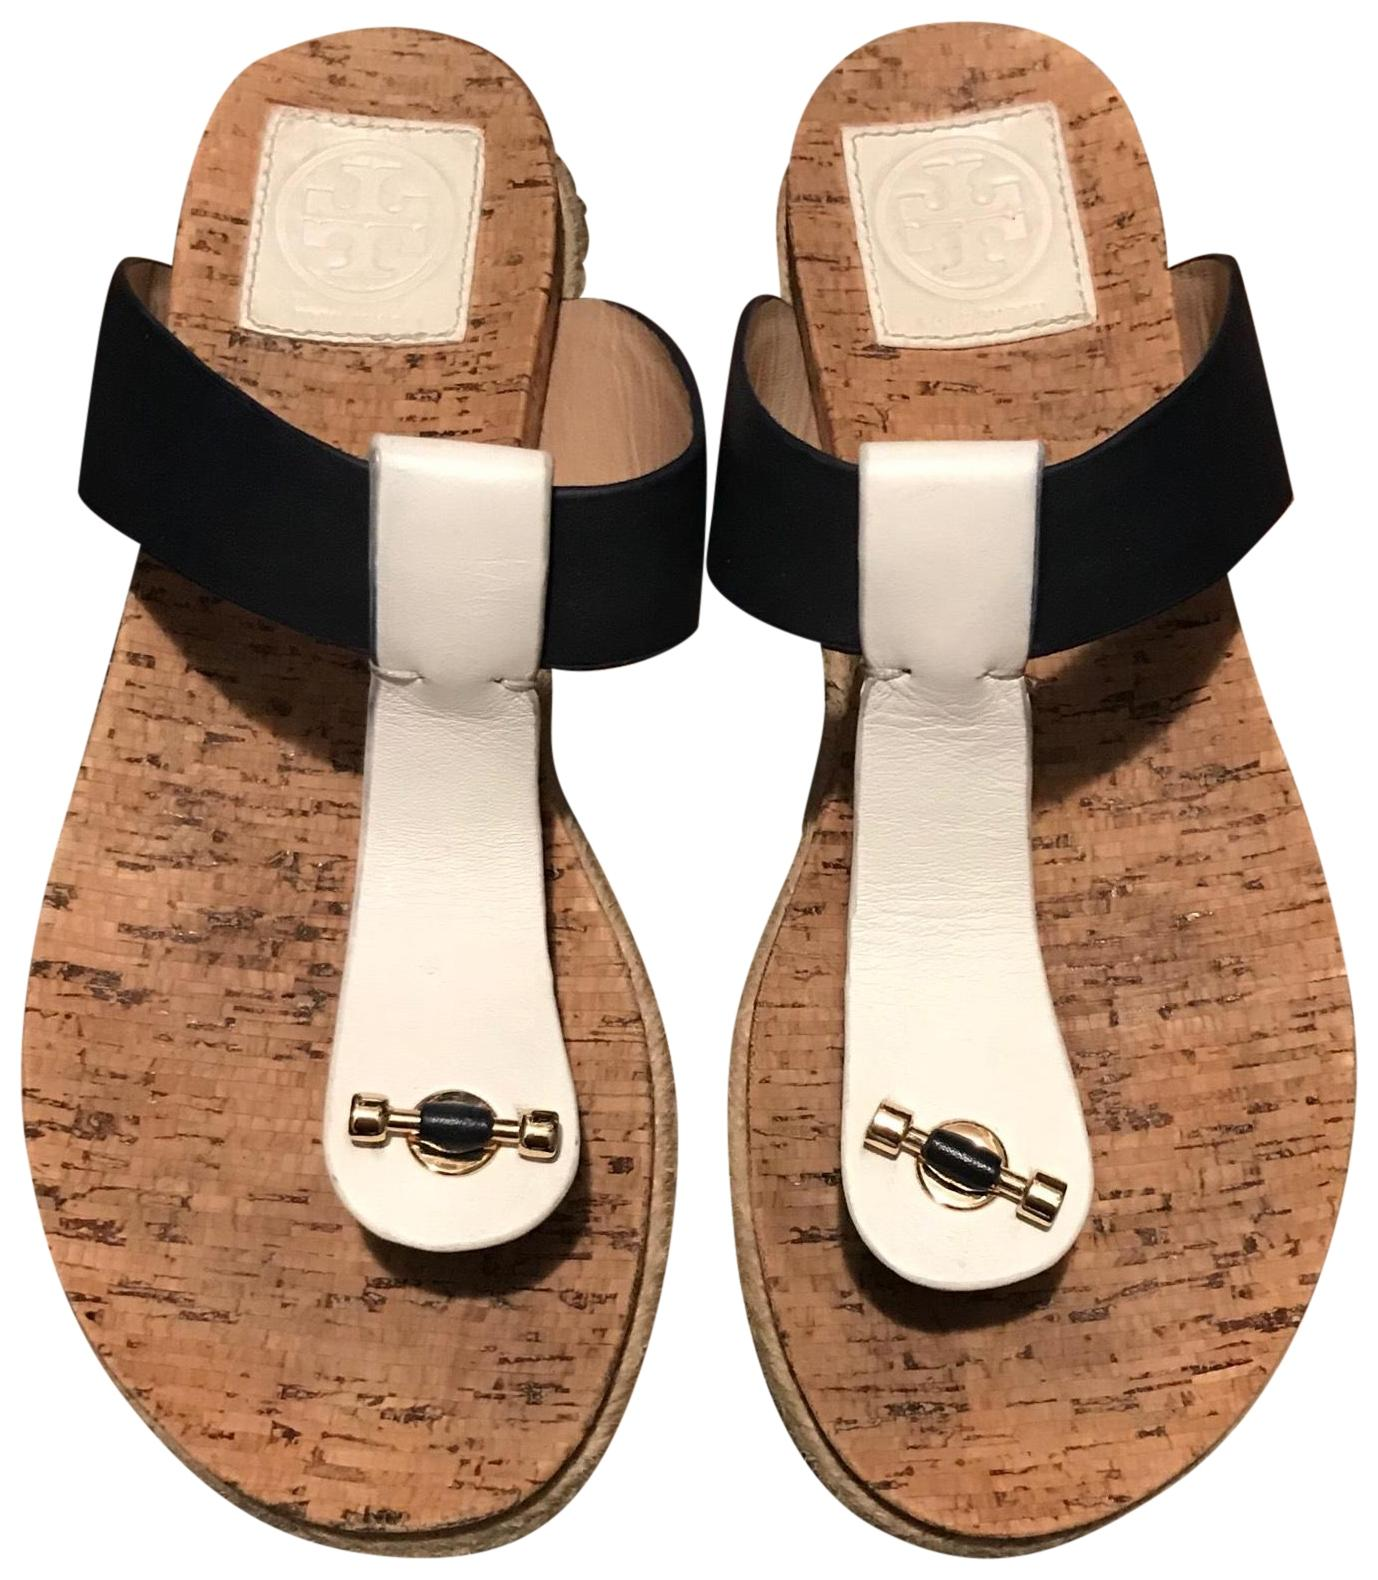 Tory Burch Navy and White Sandal Flats Size US 8 Regular (M, B)